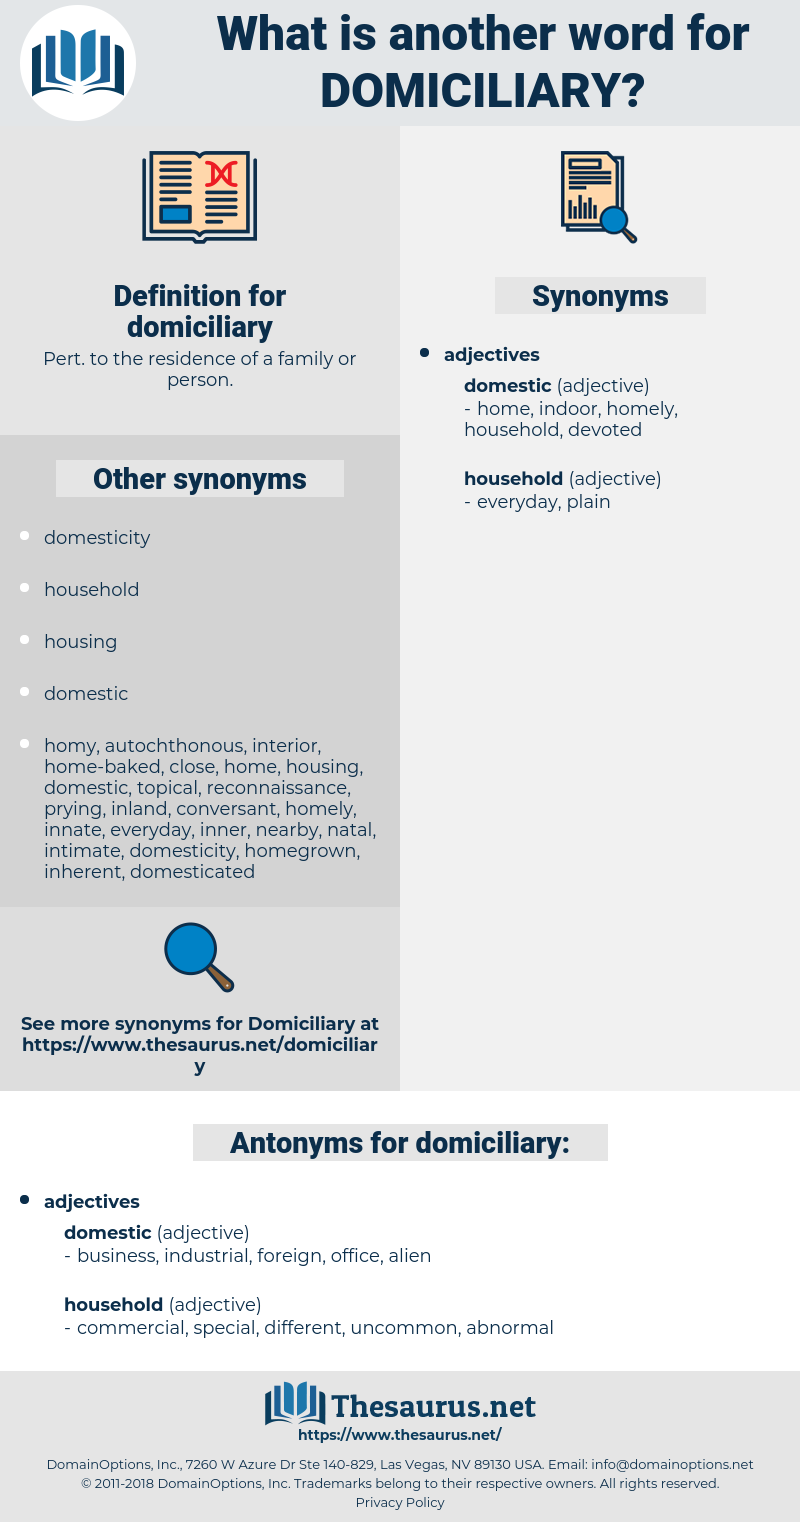 domiciliary, synonym domiciliary, another word for domiciliary, words like domiciliary, thesaurus domiciliary